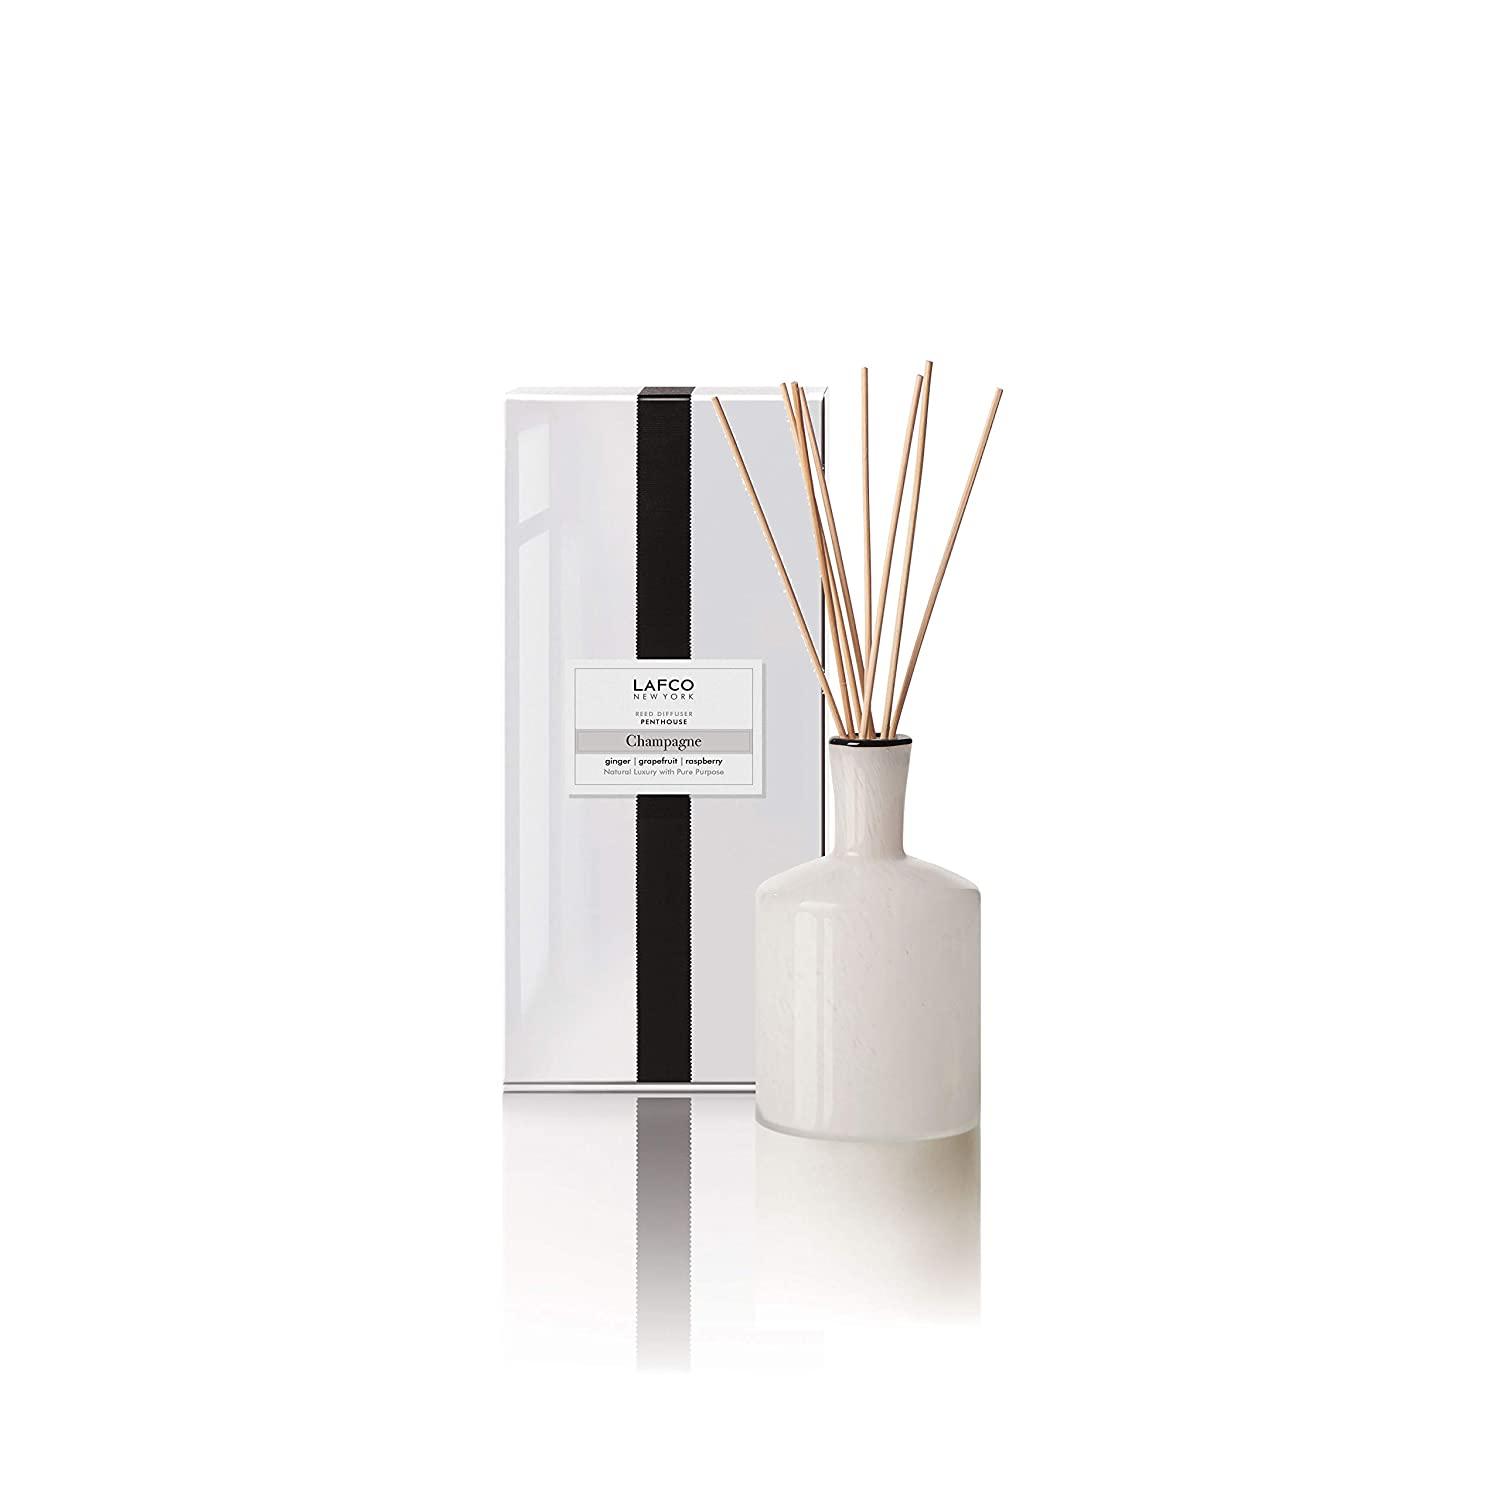 LAFCO Reed Diffuser, Champagne, Penthouse